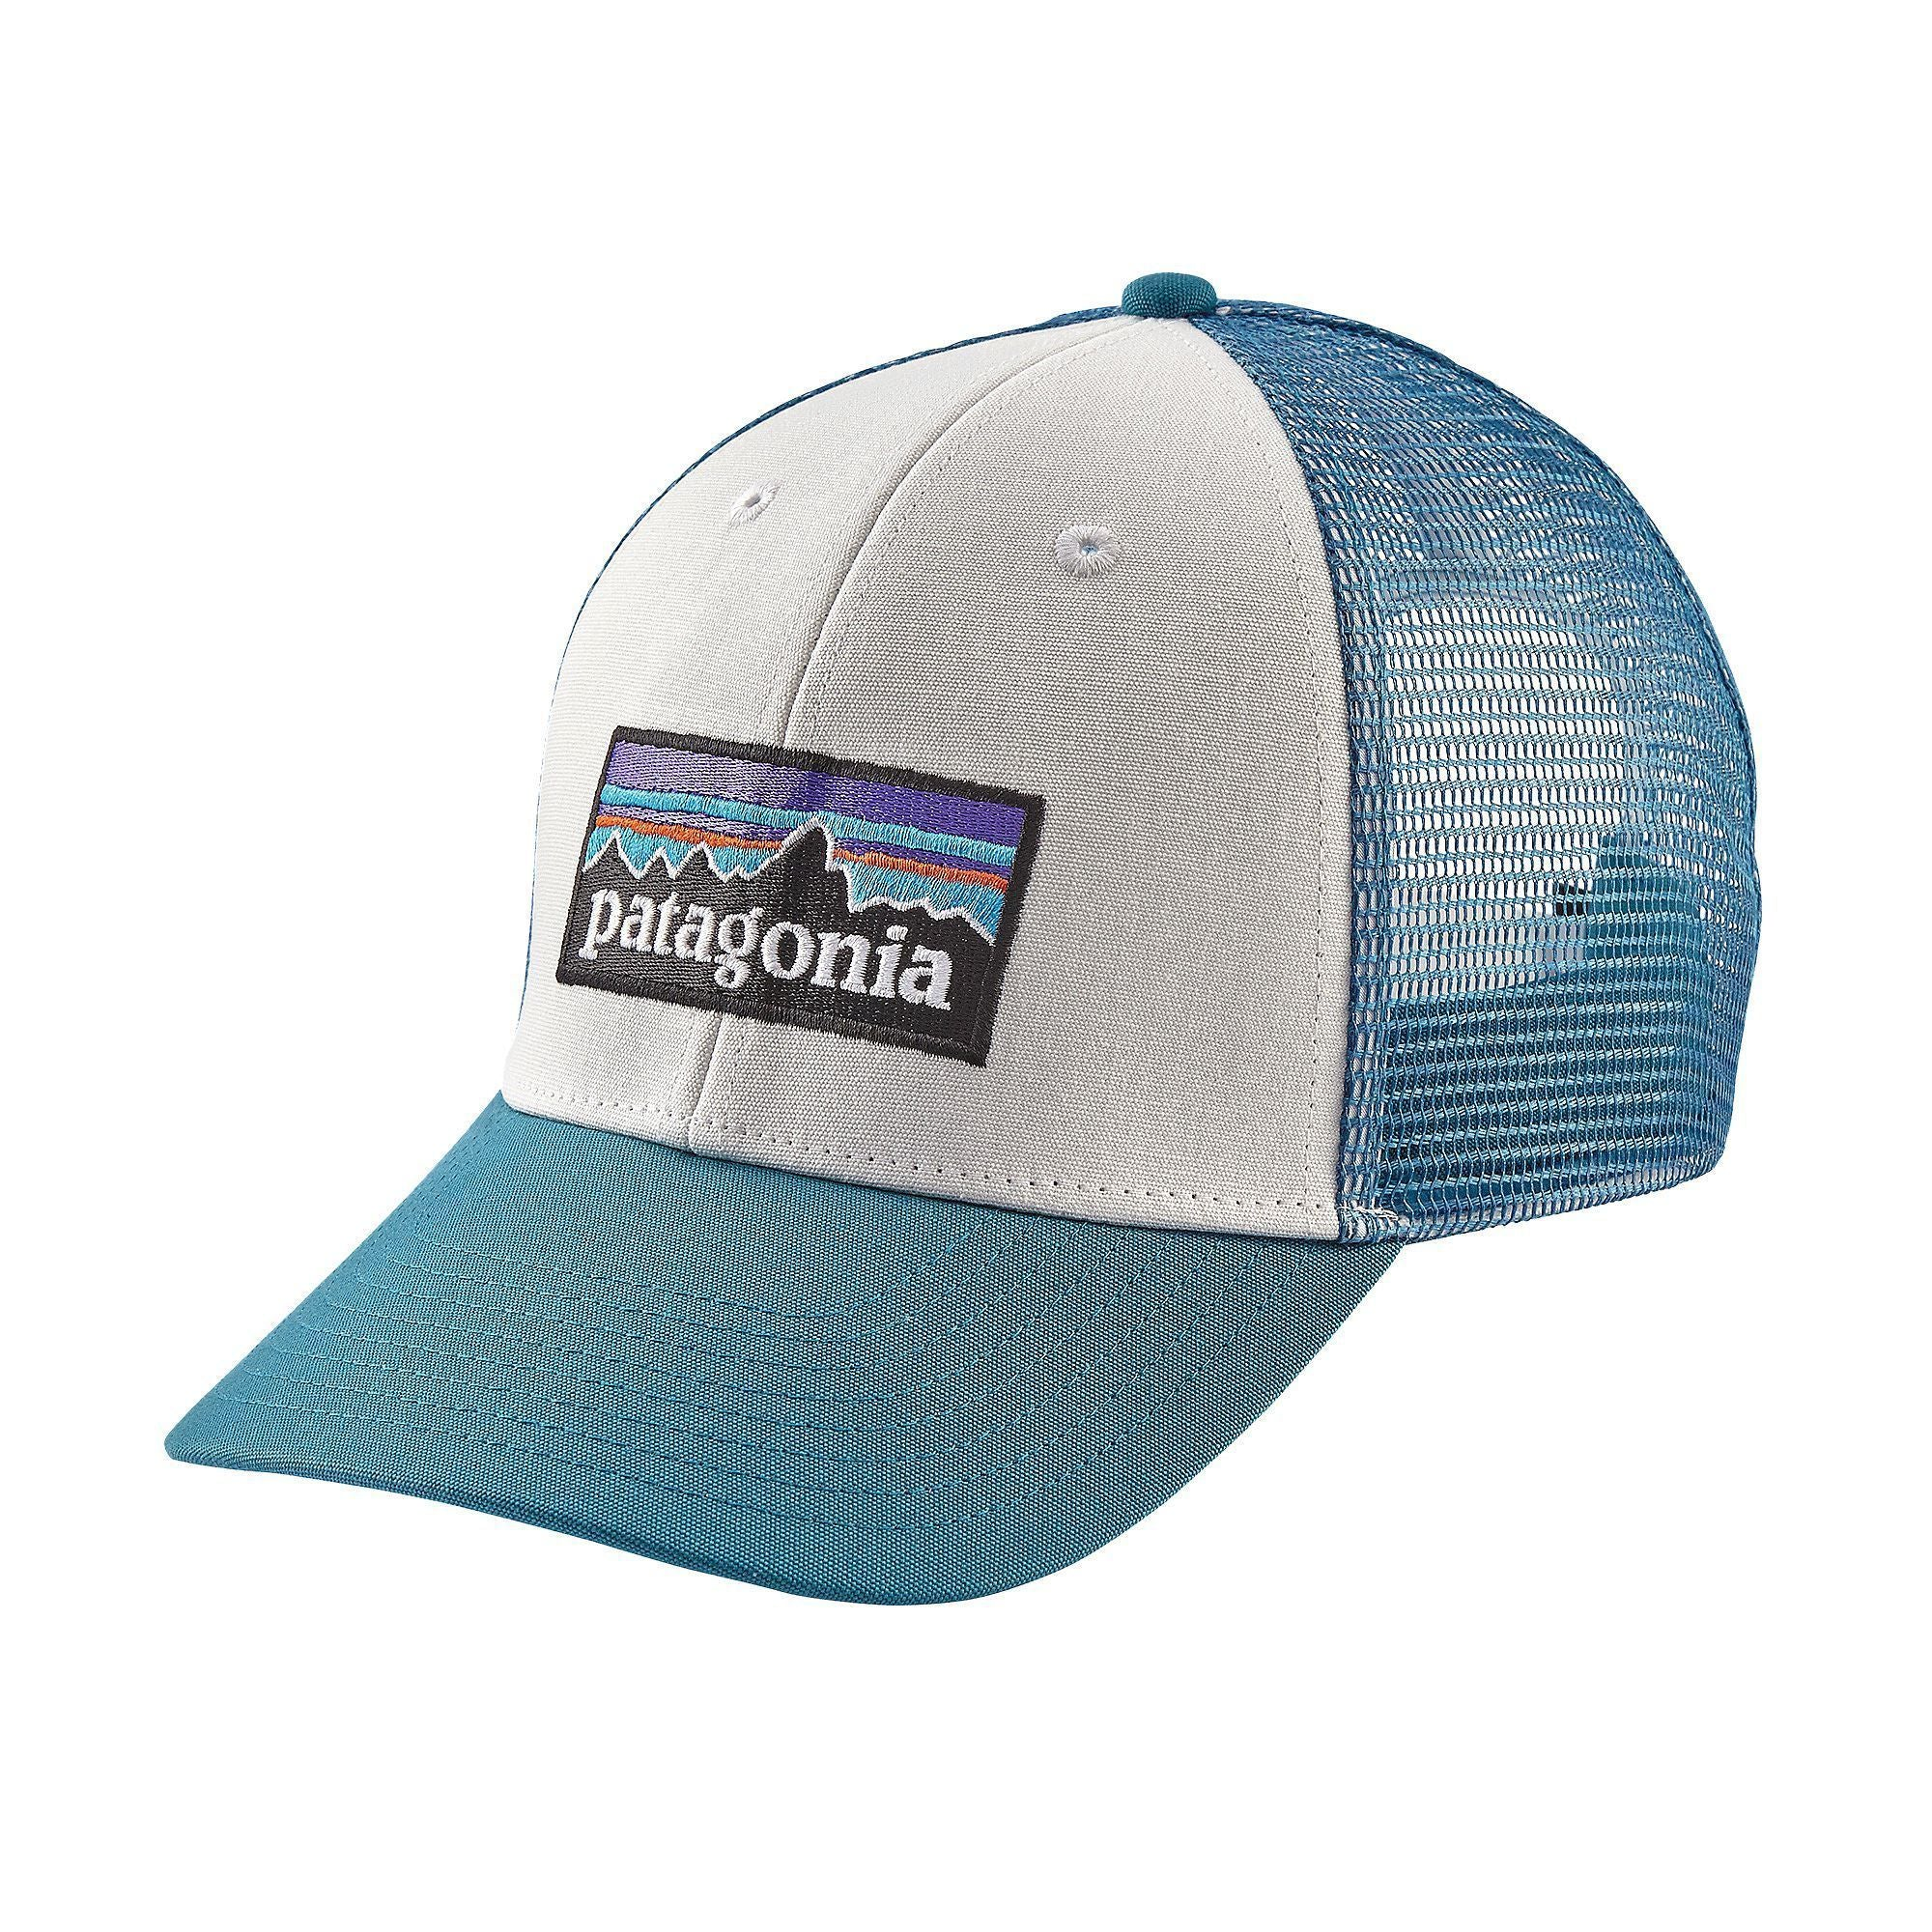 PATAGONIA Men's Hats WHITE FILTER BLUE / Adult Patagonia P-6 LoPro Hat - White w/Filter Blue || David's Clothing 38016WFTB